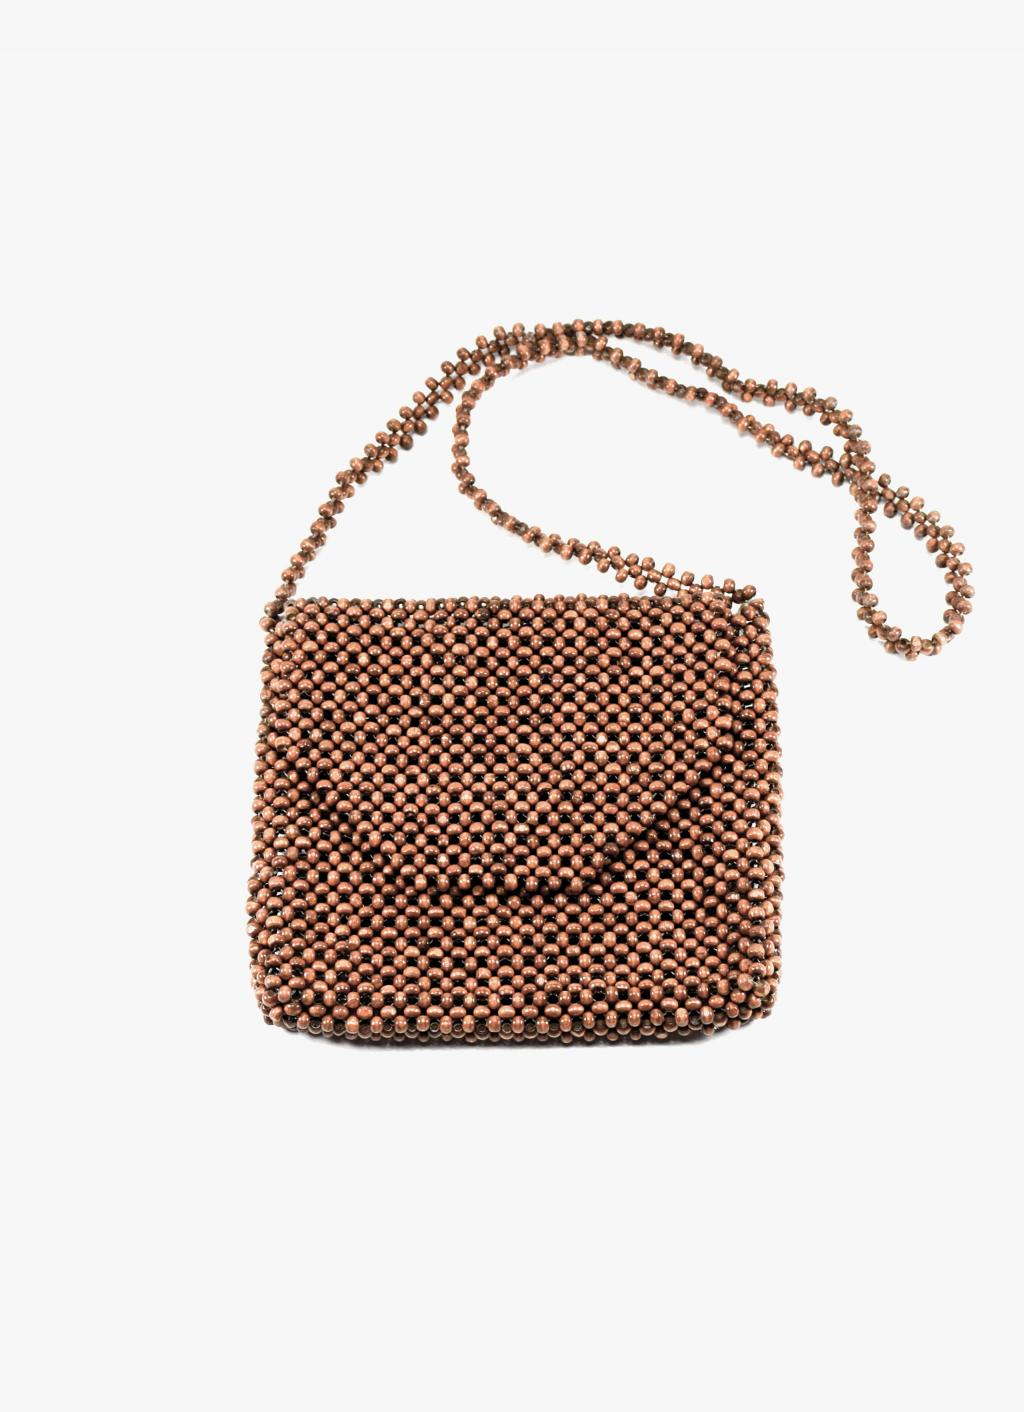 Abaca - Ligaw Wood Sling Bag - Chestnut